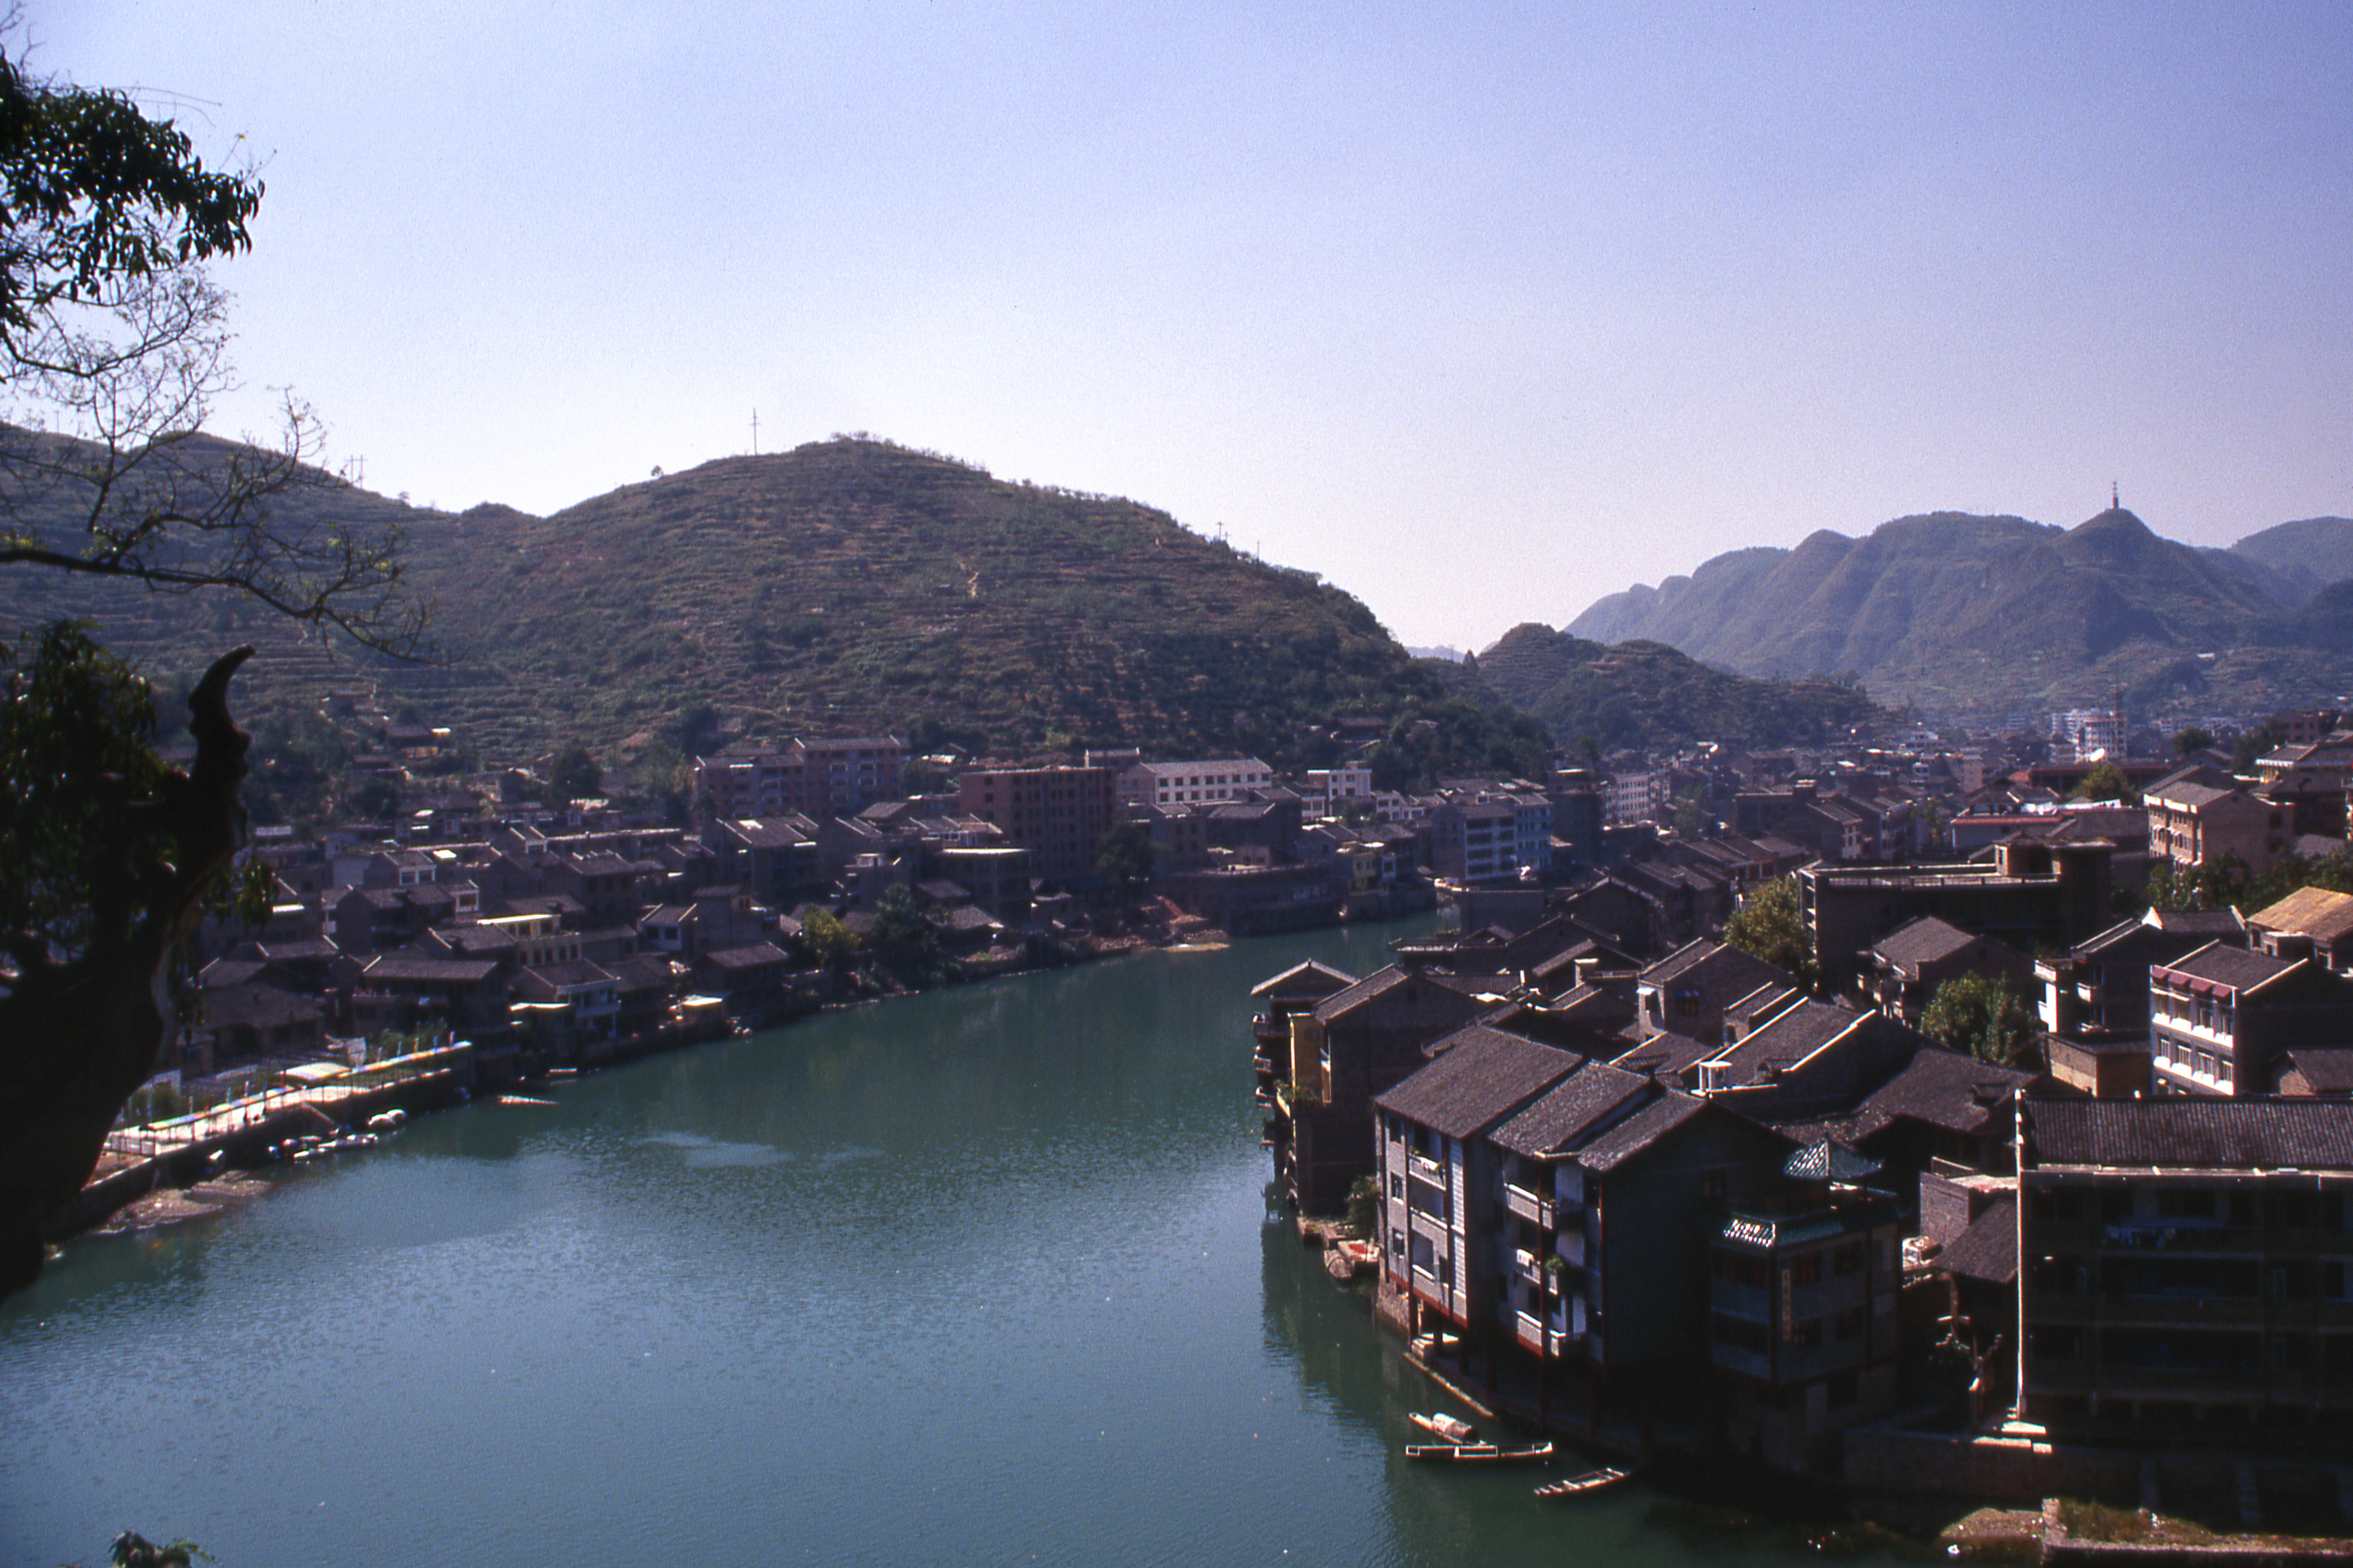 Zhenyuan (Guizhou) China  city photos : View over River Valley, Zhenyuan, Guizhou, China Click to Zoom